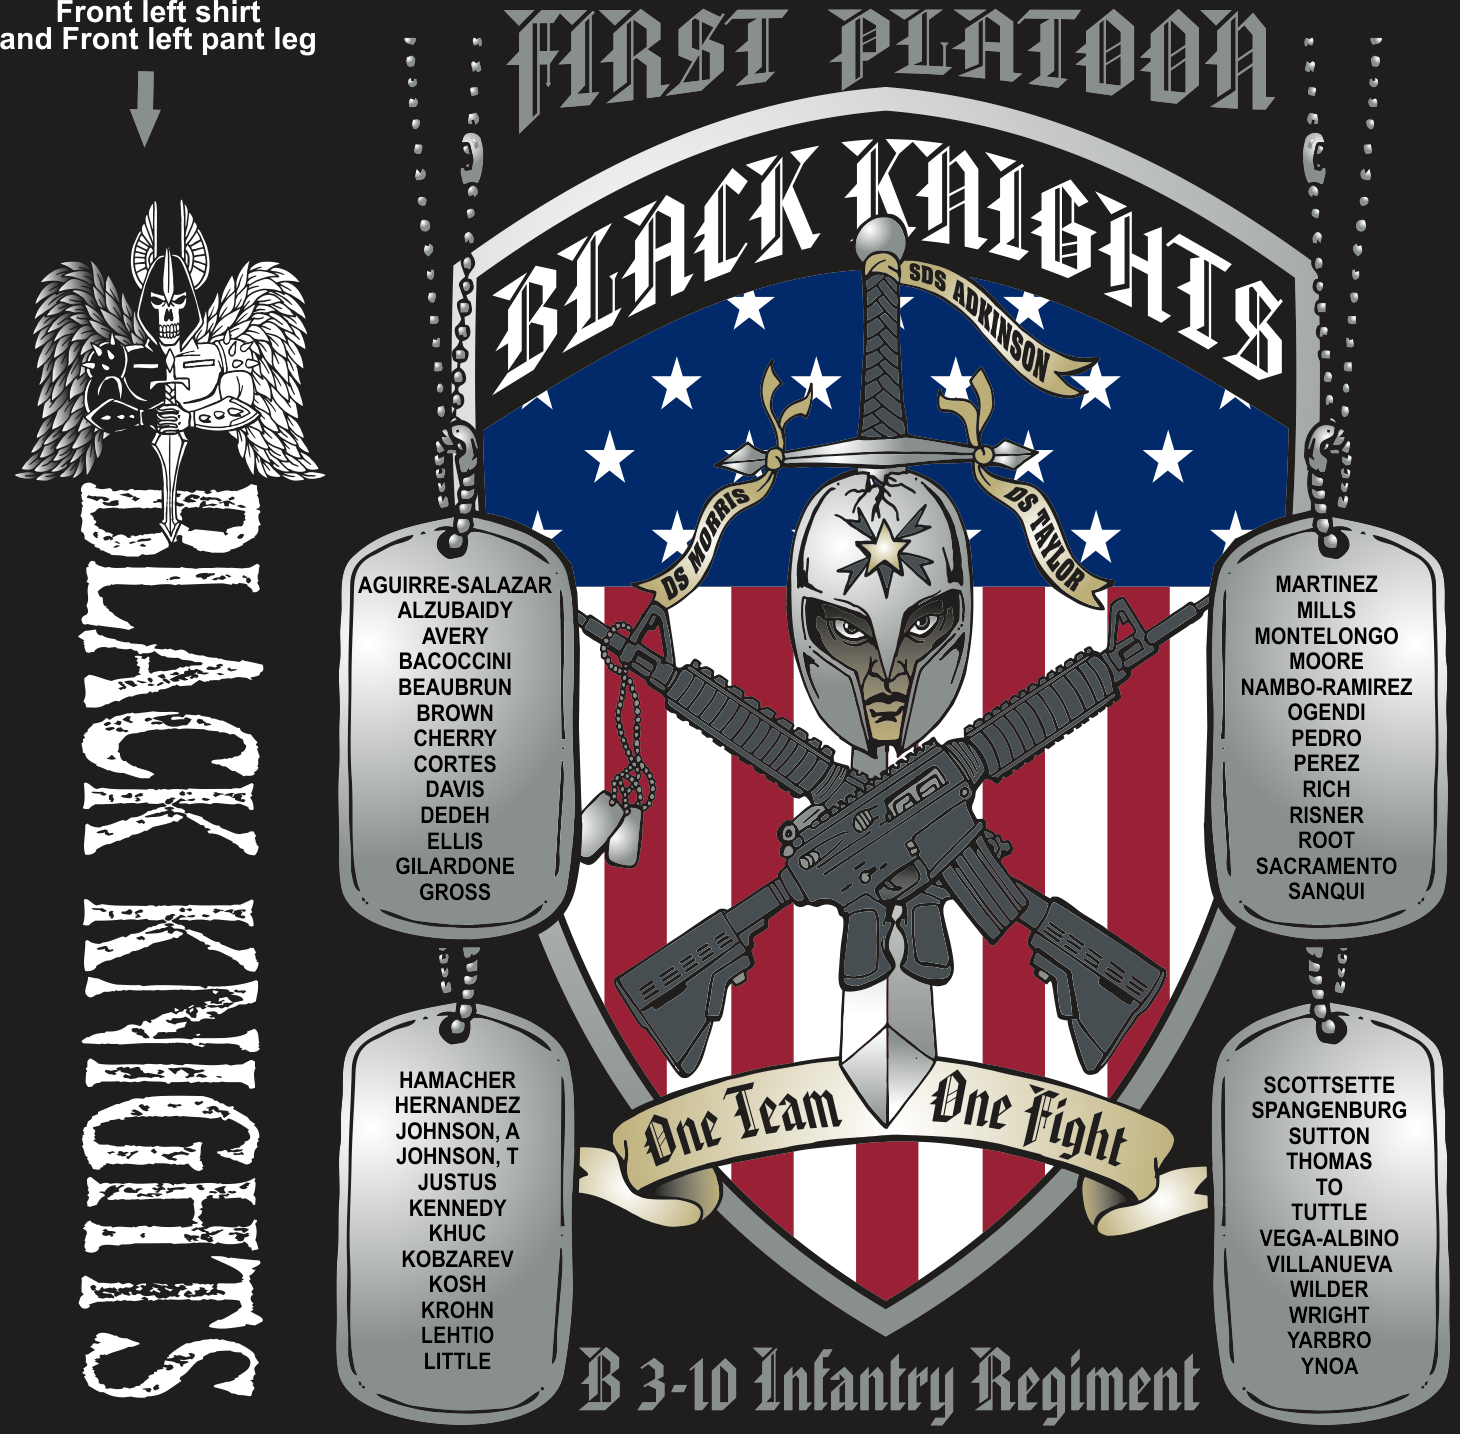 BRAVO 3-10 BLACK KNIGHTS GRADUATING DAY 6-29-2017 digital